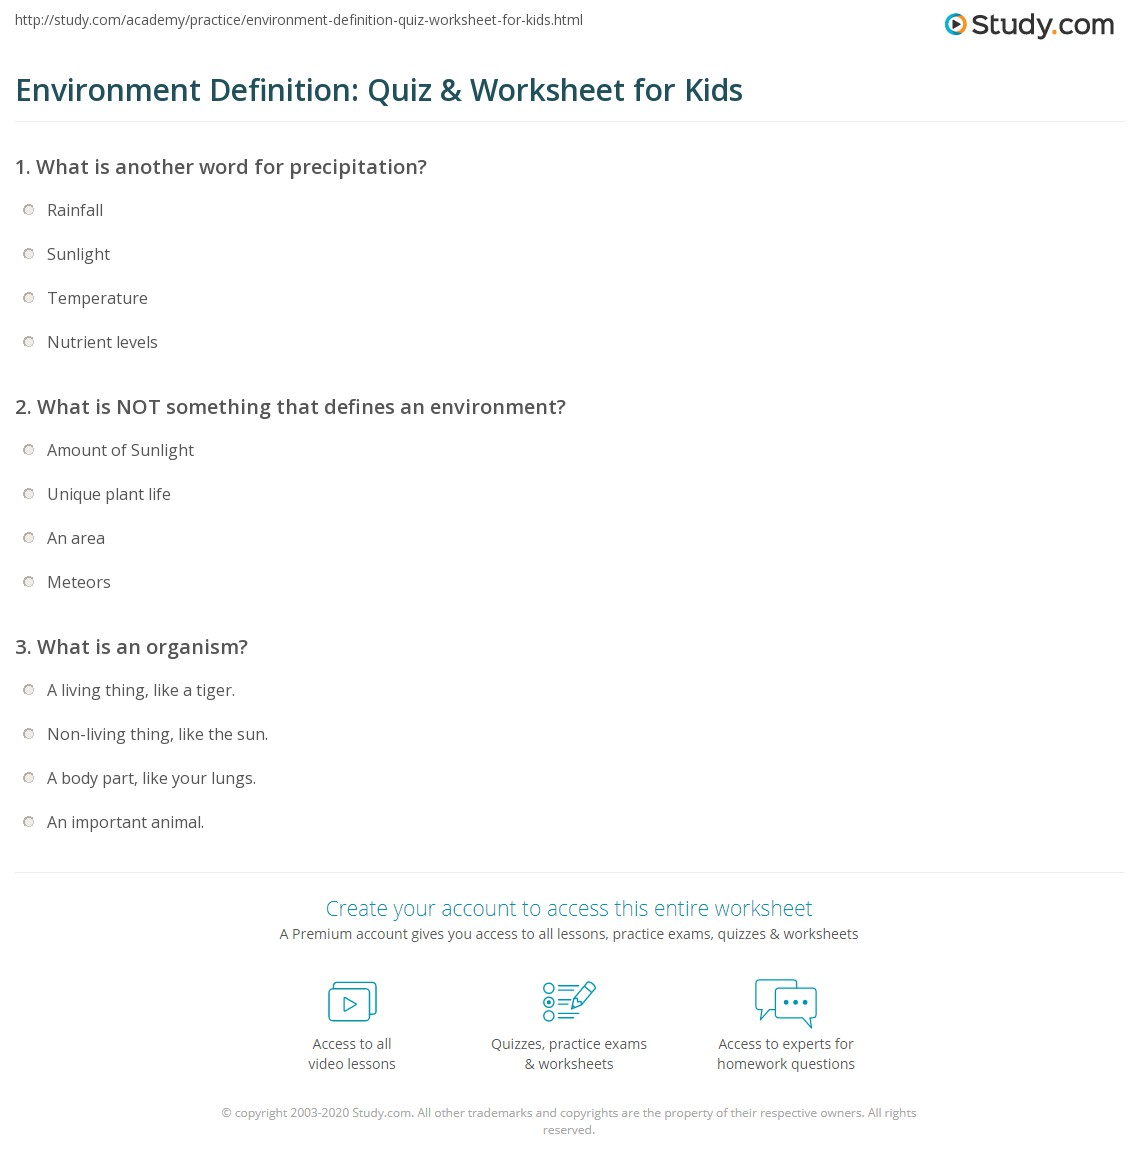 environment definition: quiz & worksheet for kids | study